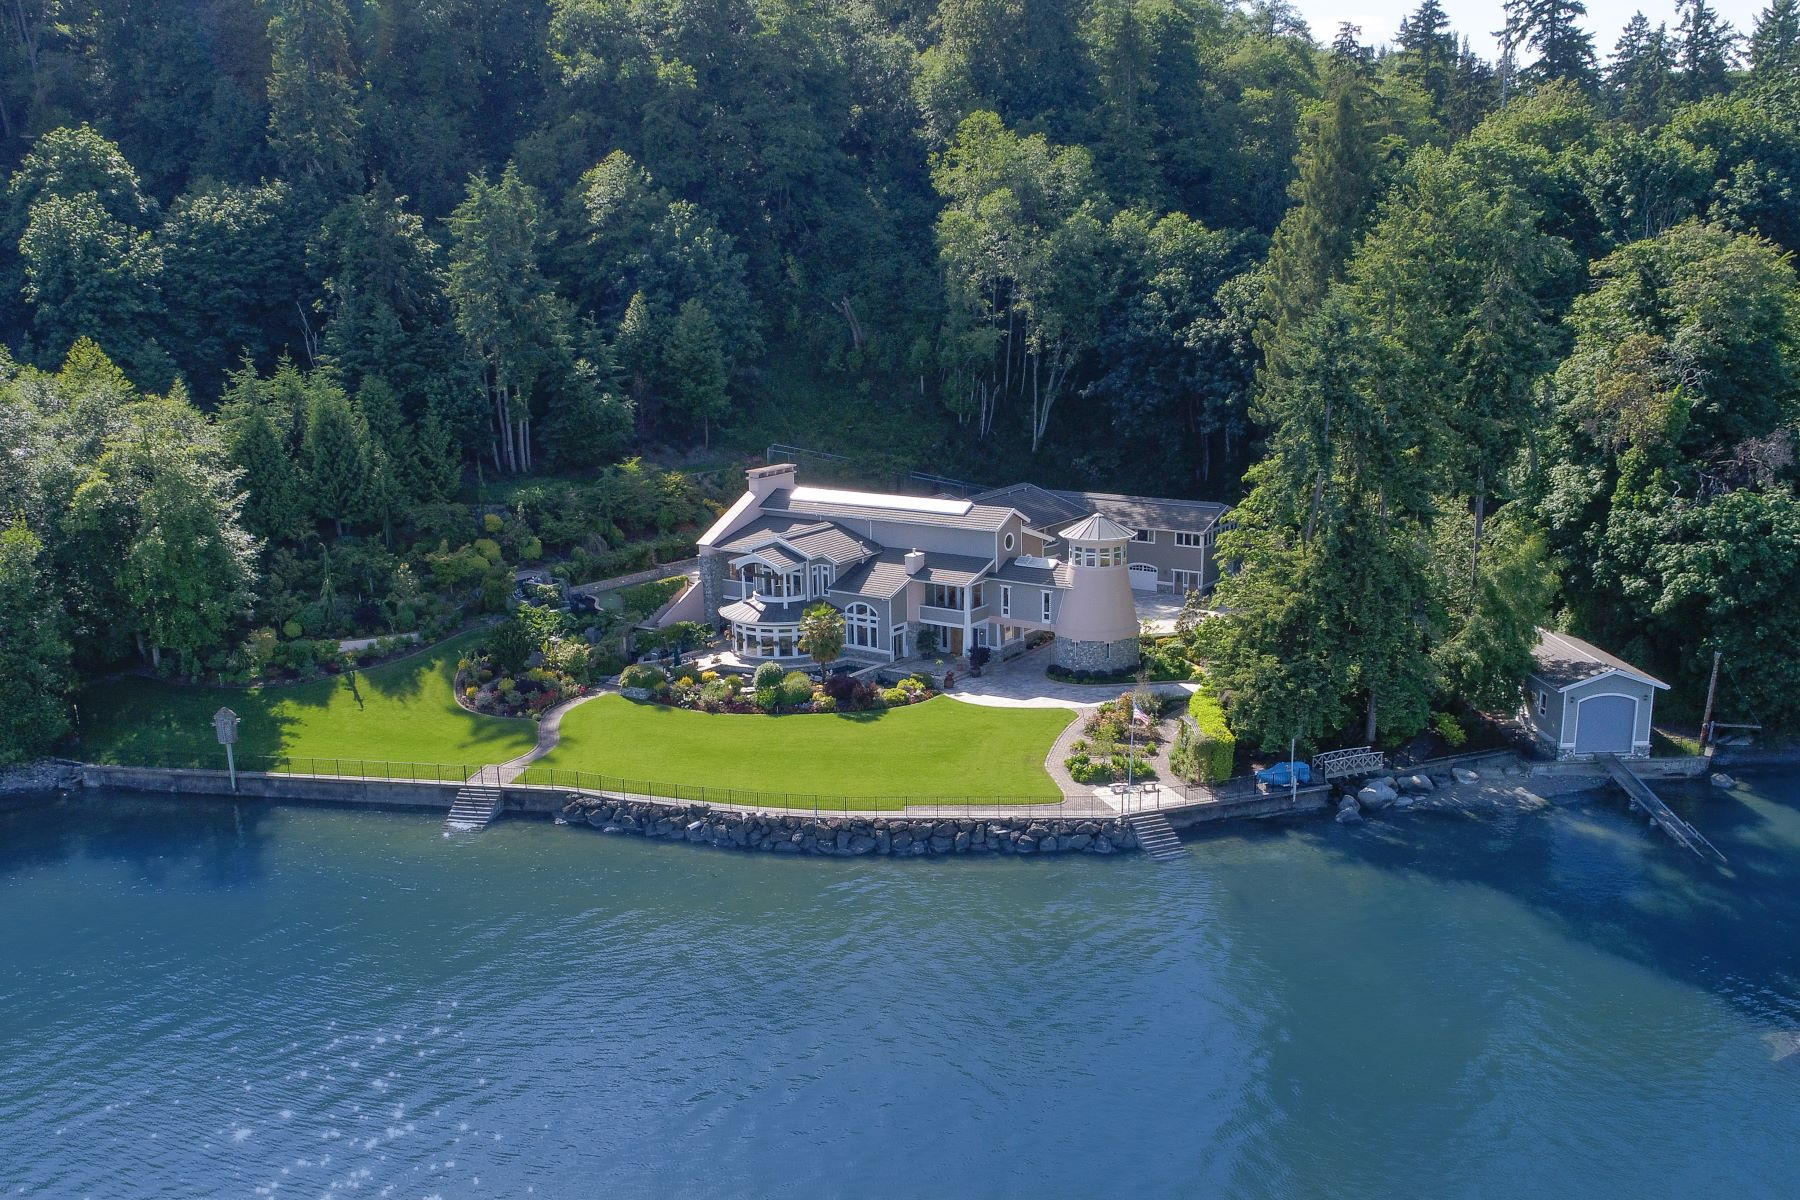 Single Family Home for Sale at Private Palatial Waterfront 8415 SW Soper Road Vashon, Washington 98070 United States